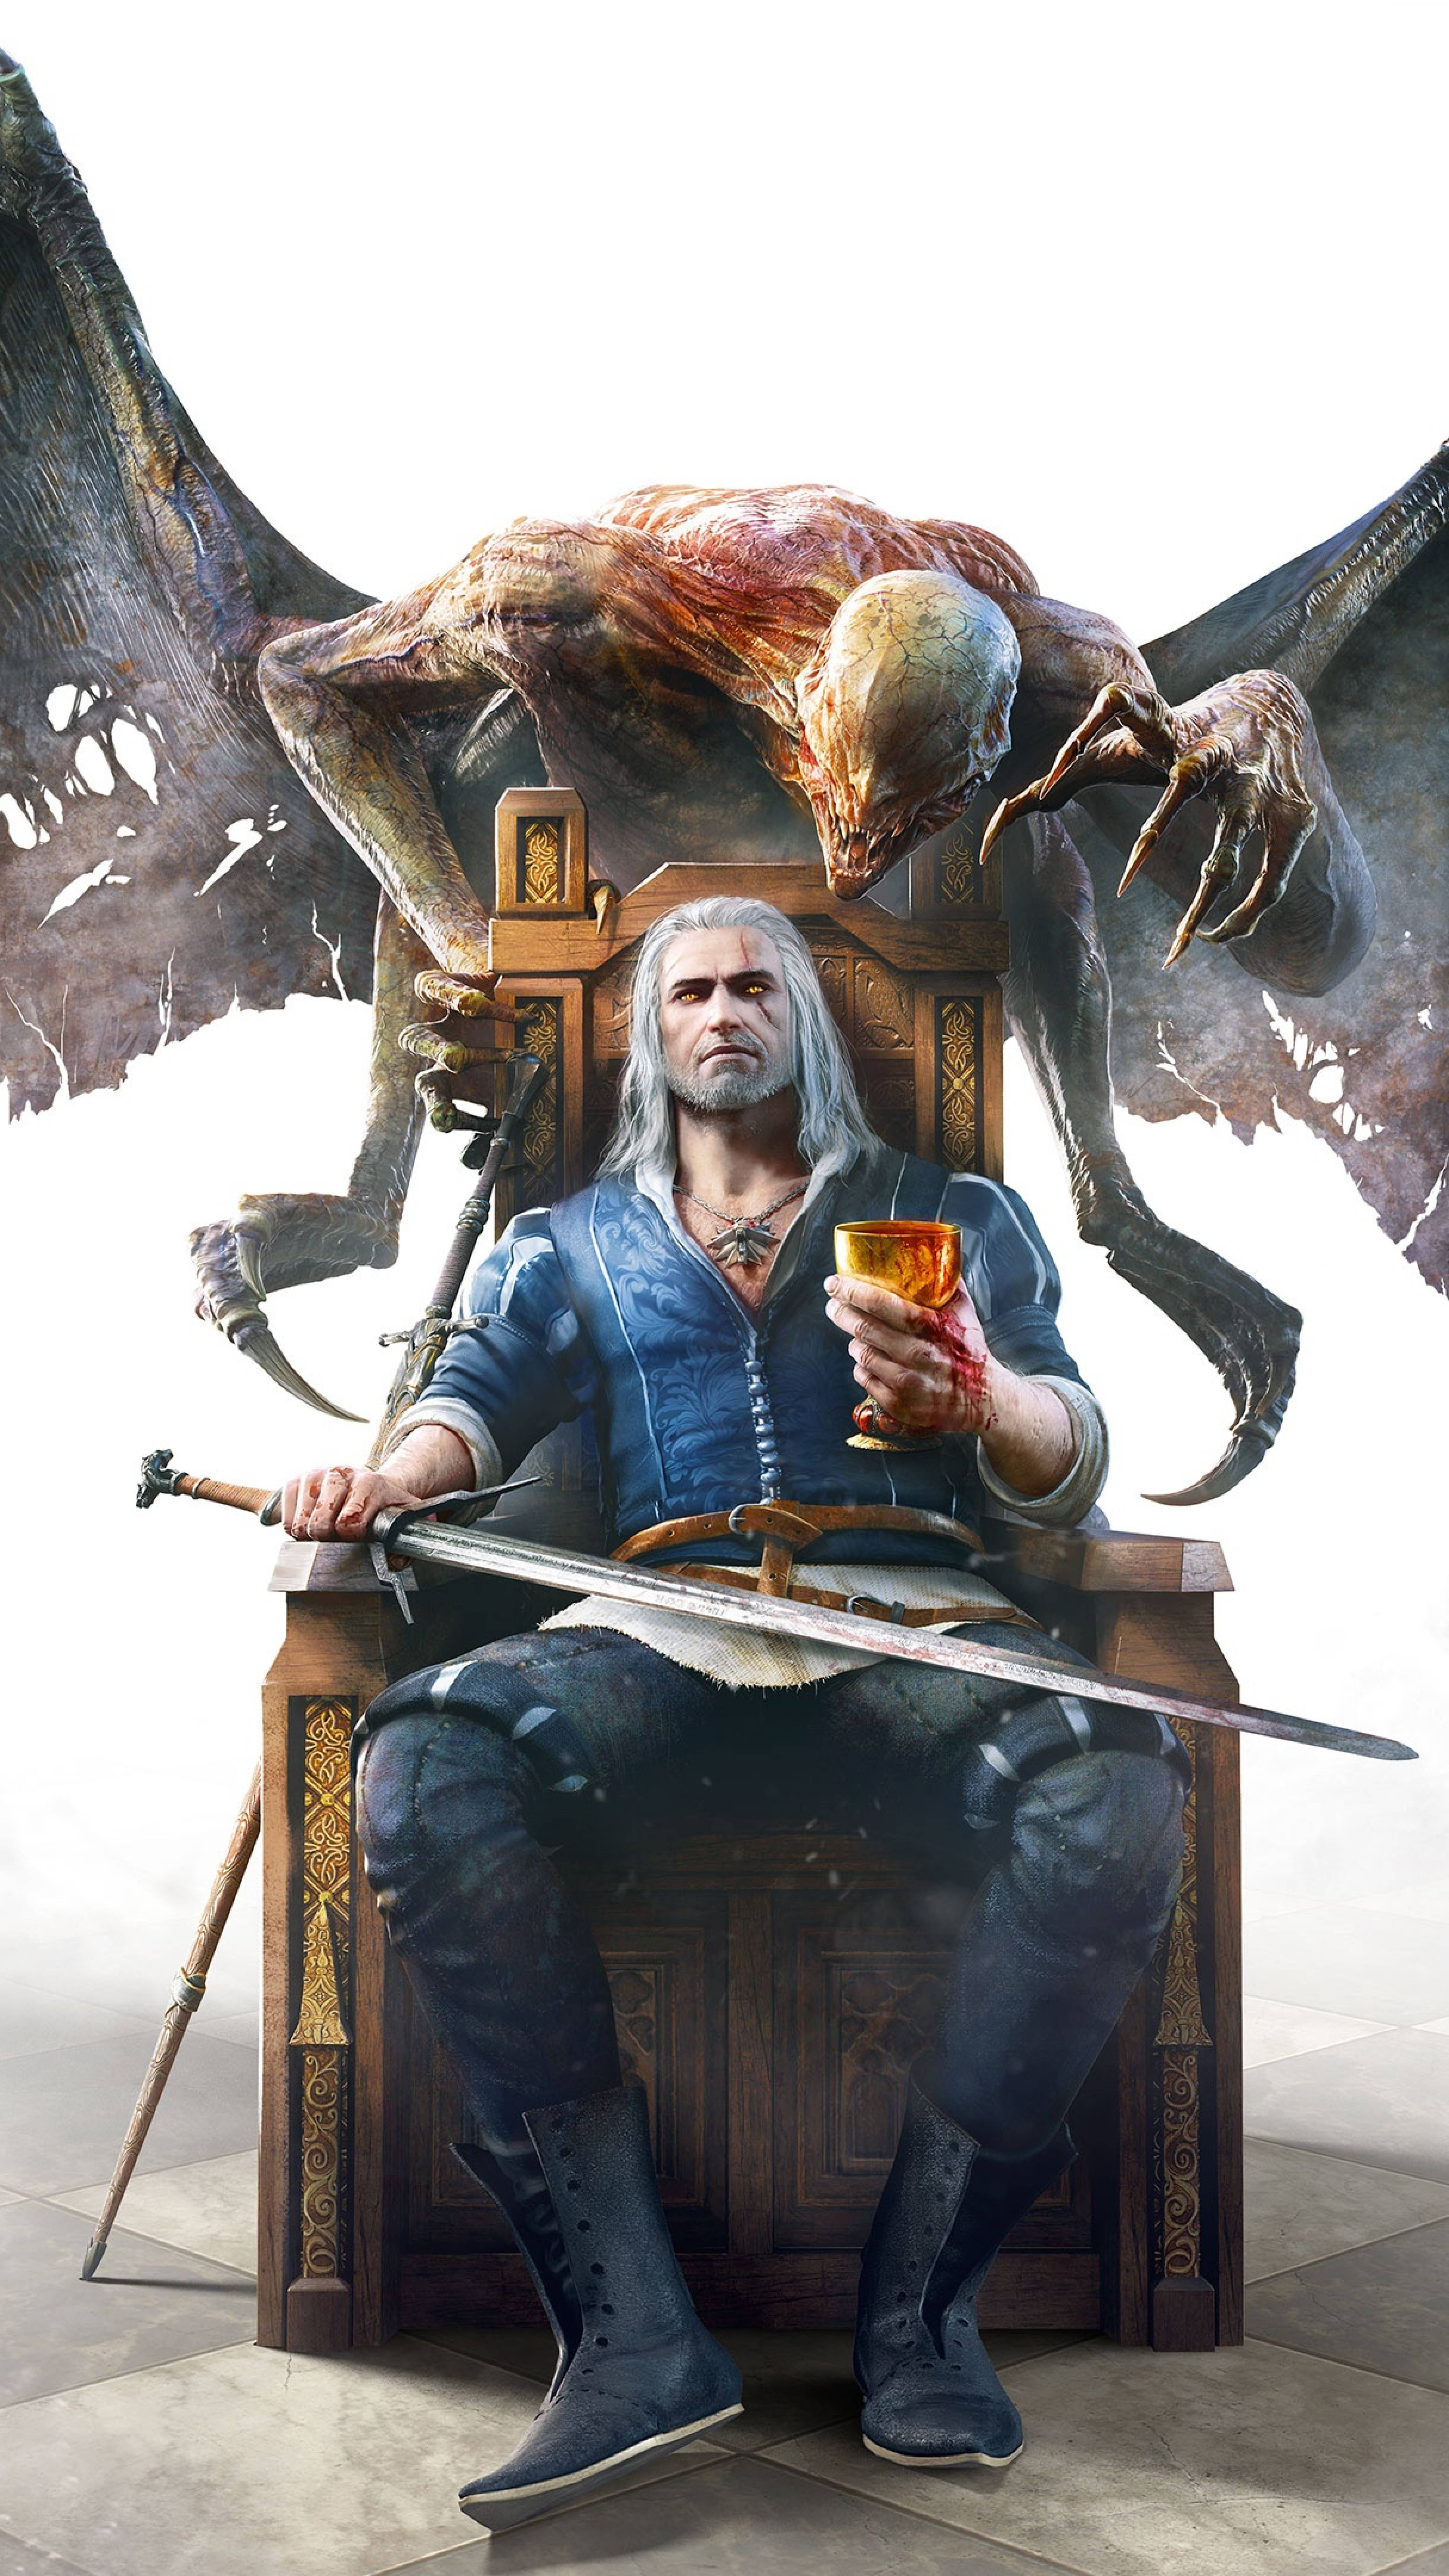 Witcher 3 Mobile Wallpapers - Top Free Witcher 3 Mobile ...